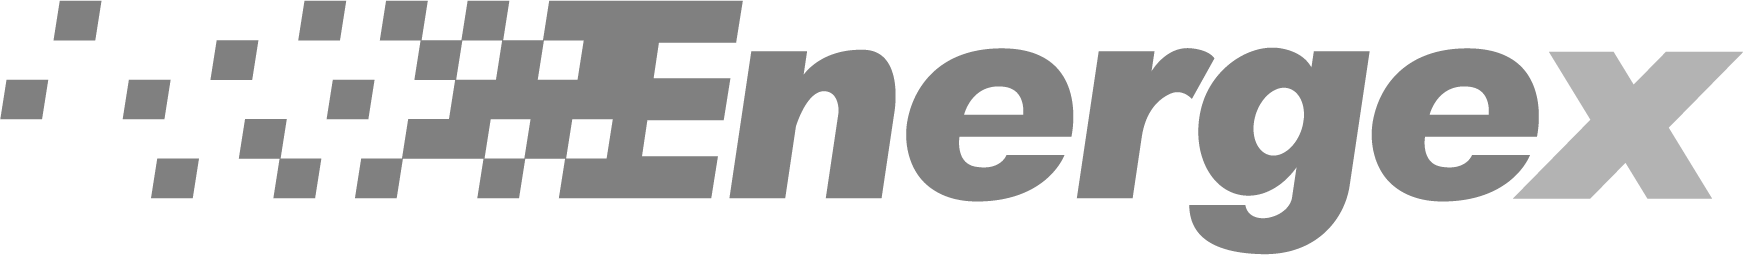 energex_logo_png.png